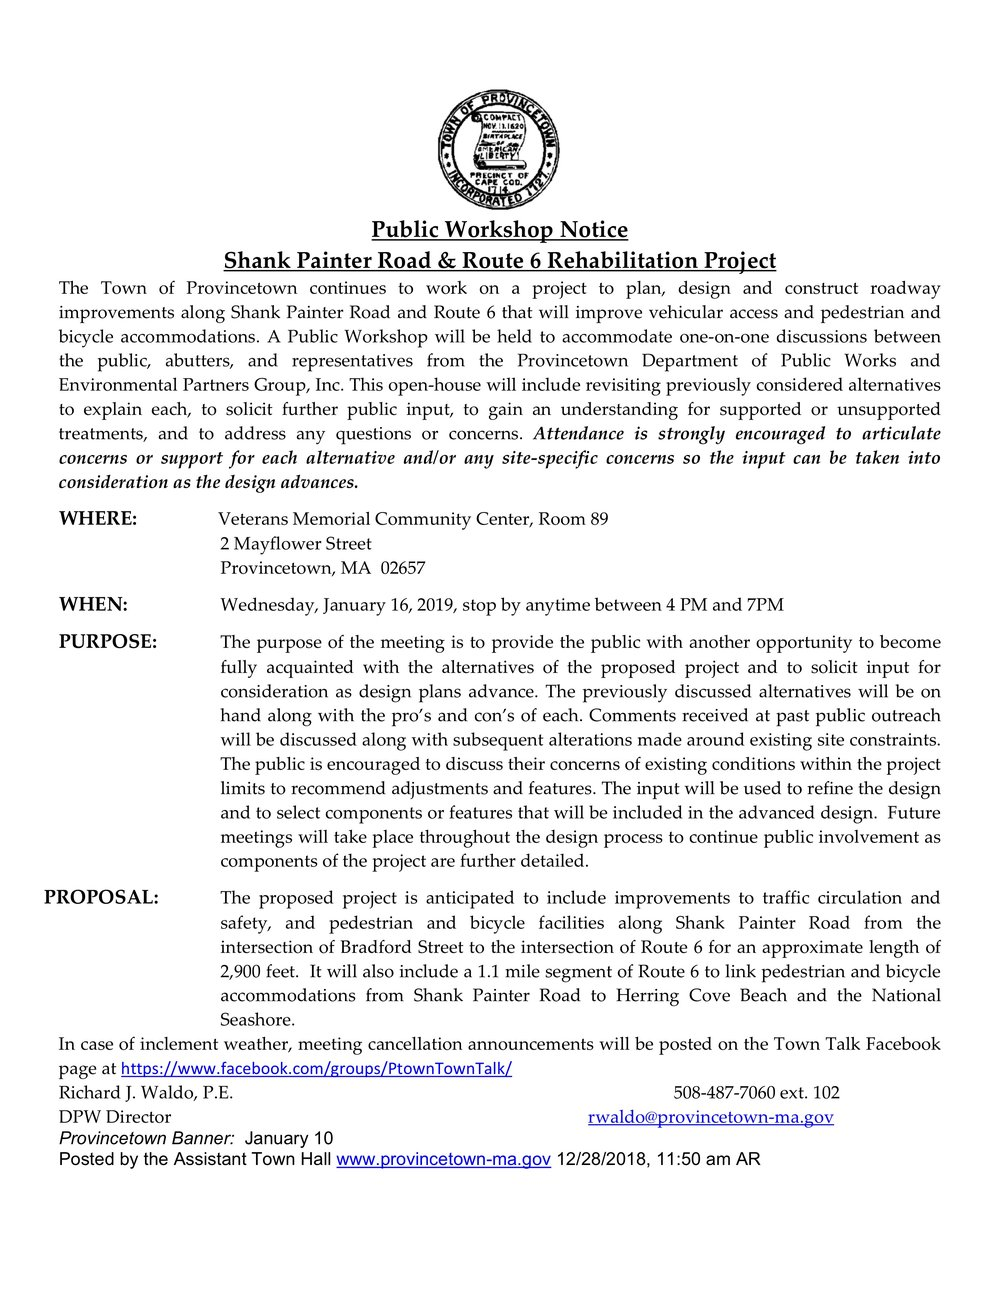 Shank Painter Road & Route 6 Rehabilitation Project Workshop notice (Provincetown)